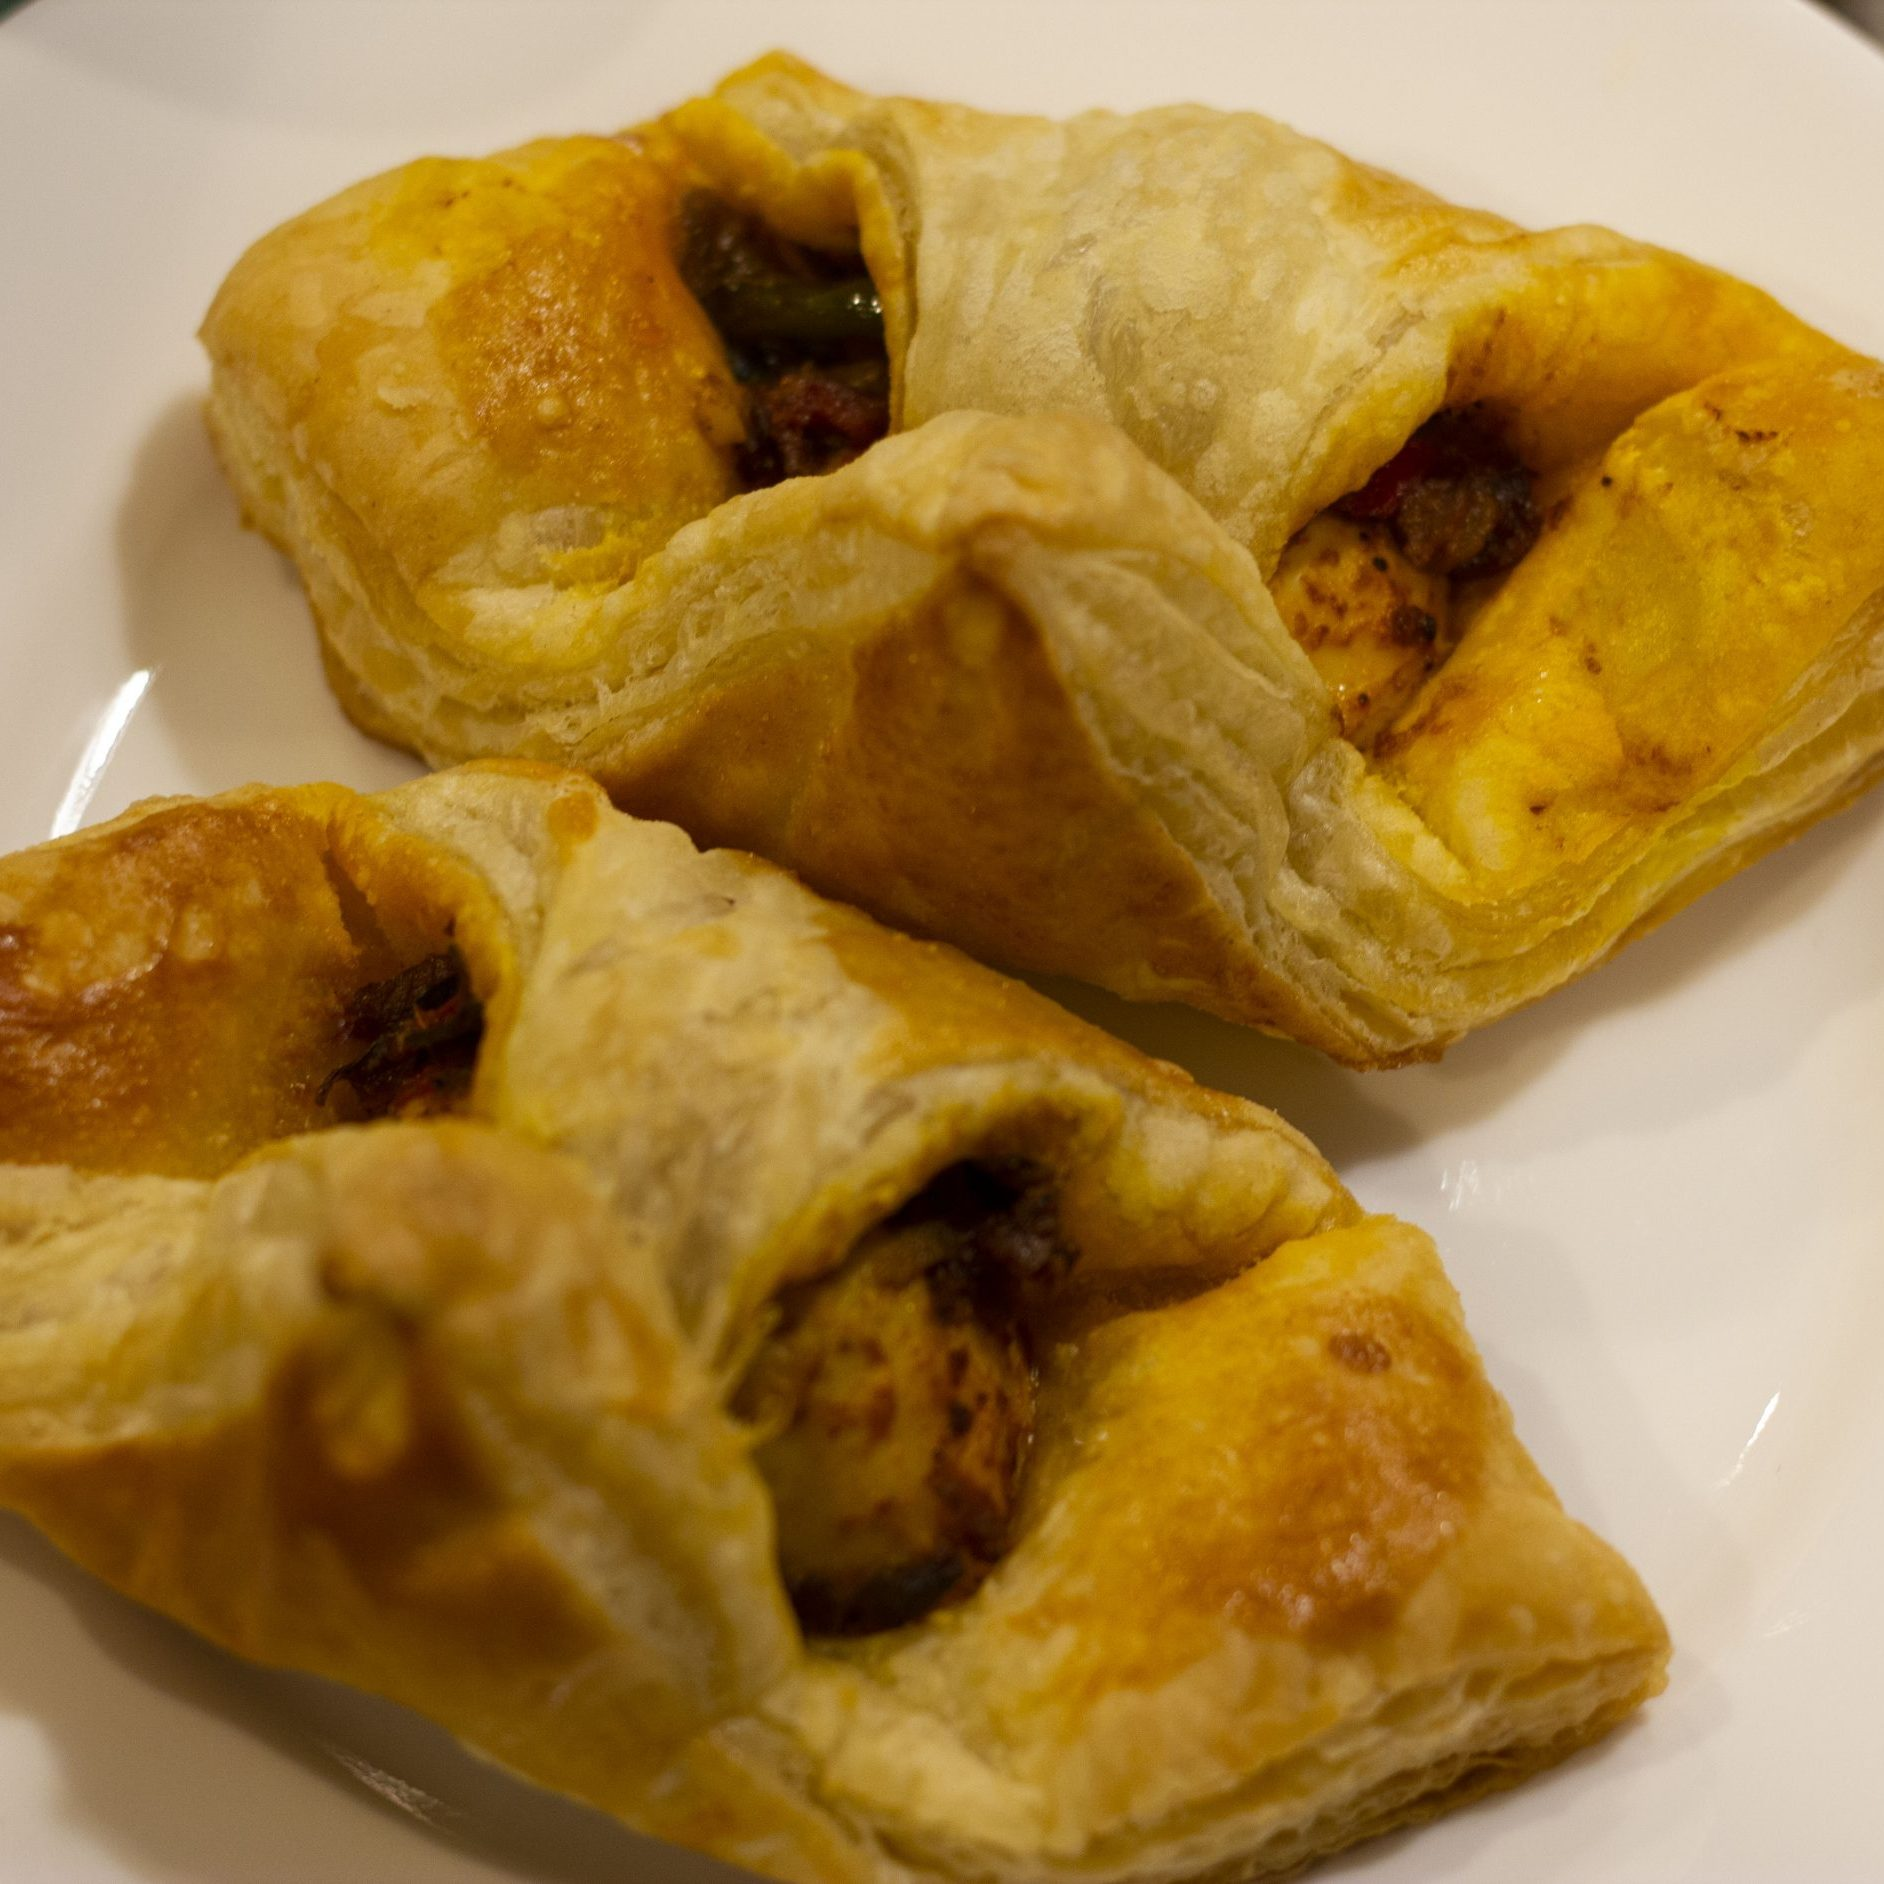 Egg puffs with pastry sheets